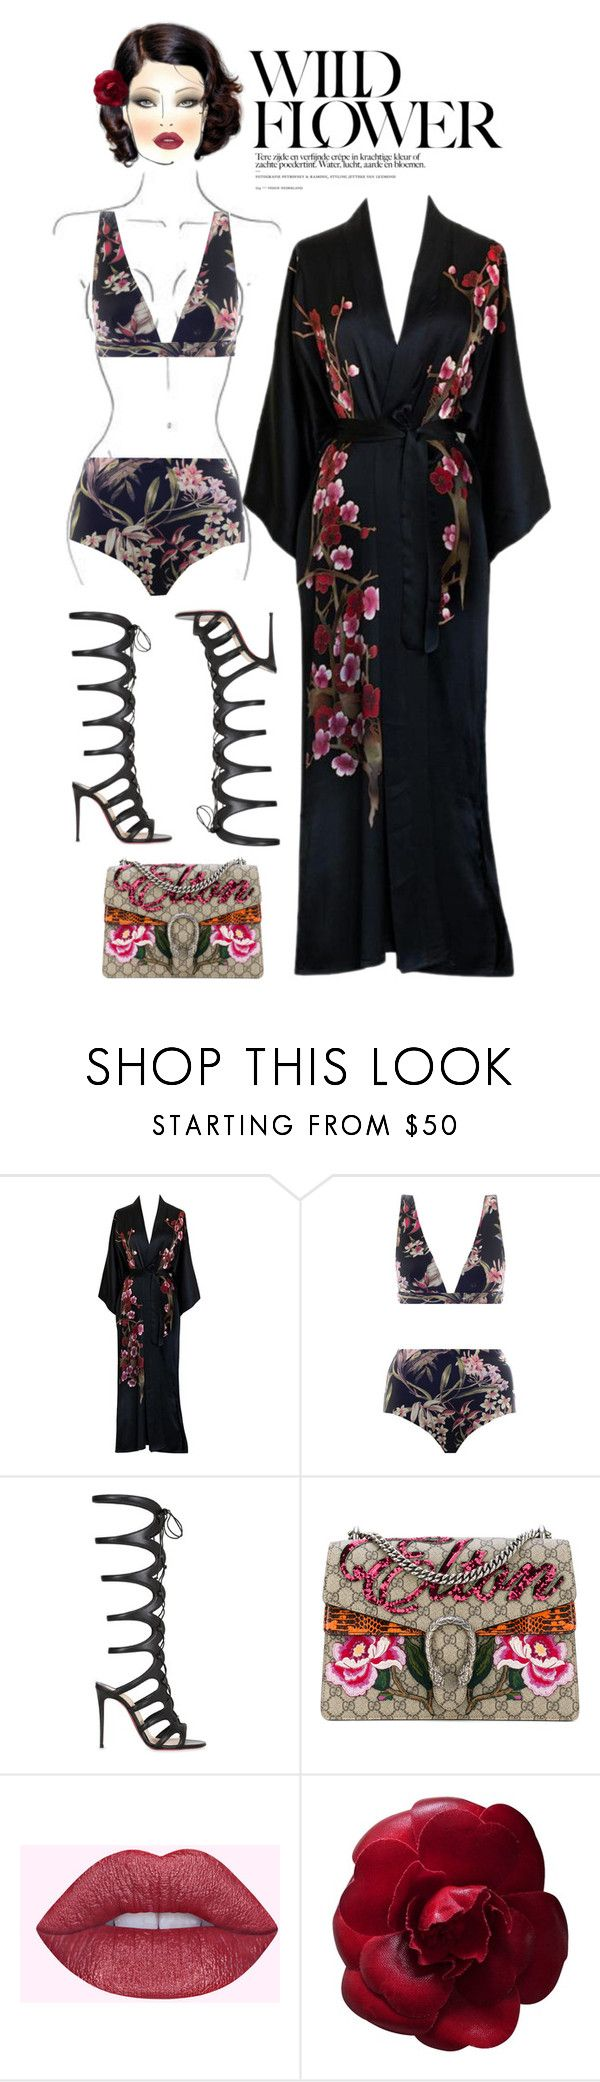 """""""Beach house in Miami"""" by johnrefos ❤ liked on Polyvore featuring Zimmermann, M.A.C, Christian Louboutin, Gucci and Chanel"""